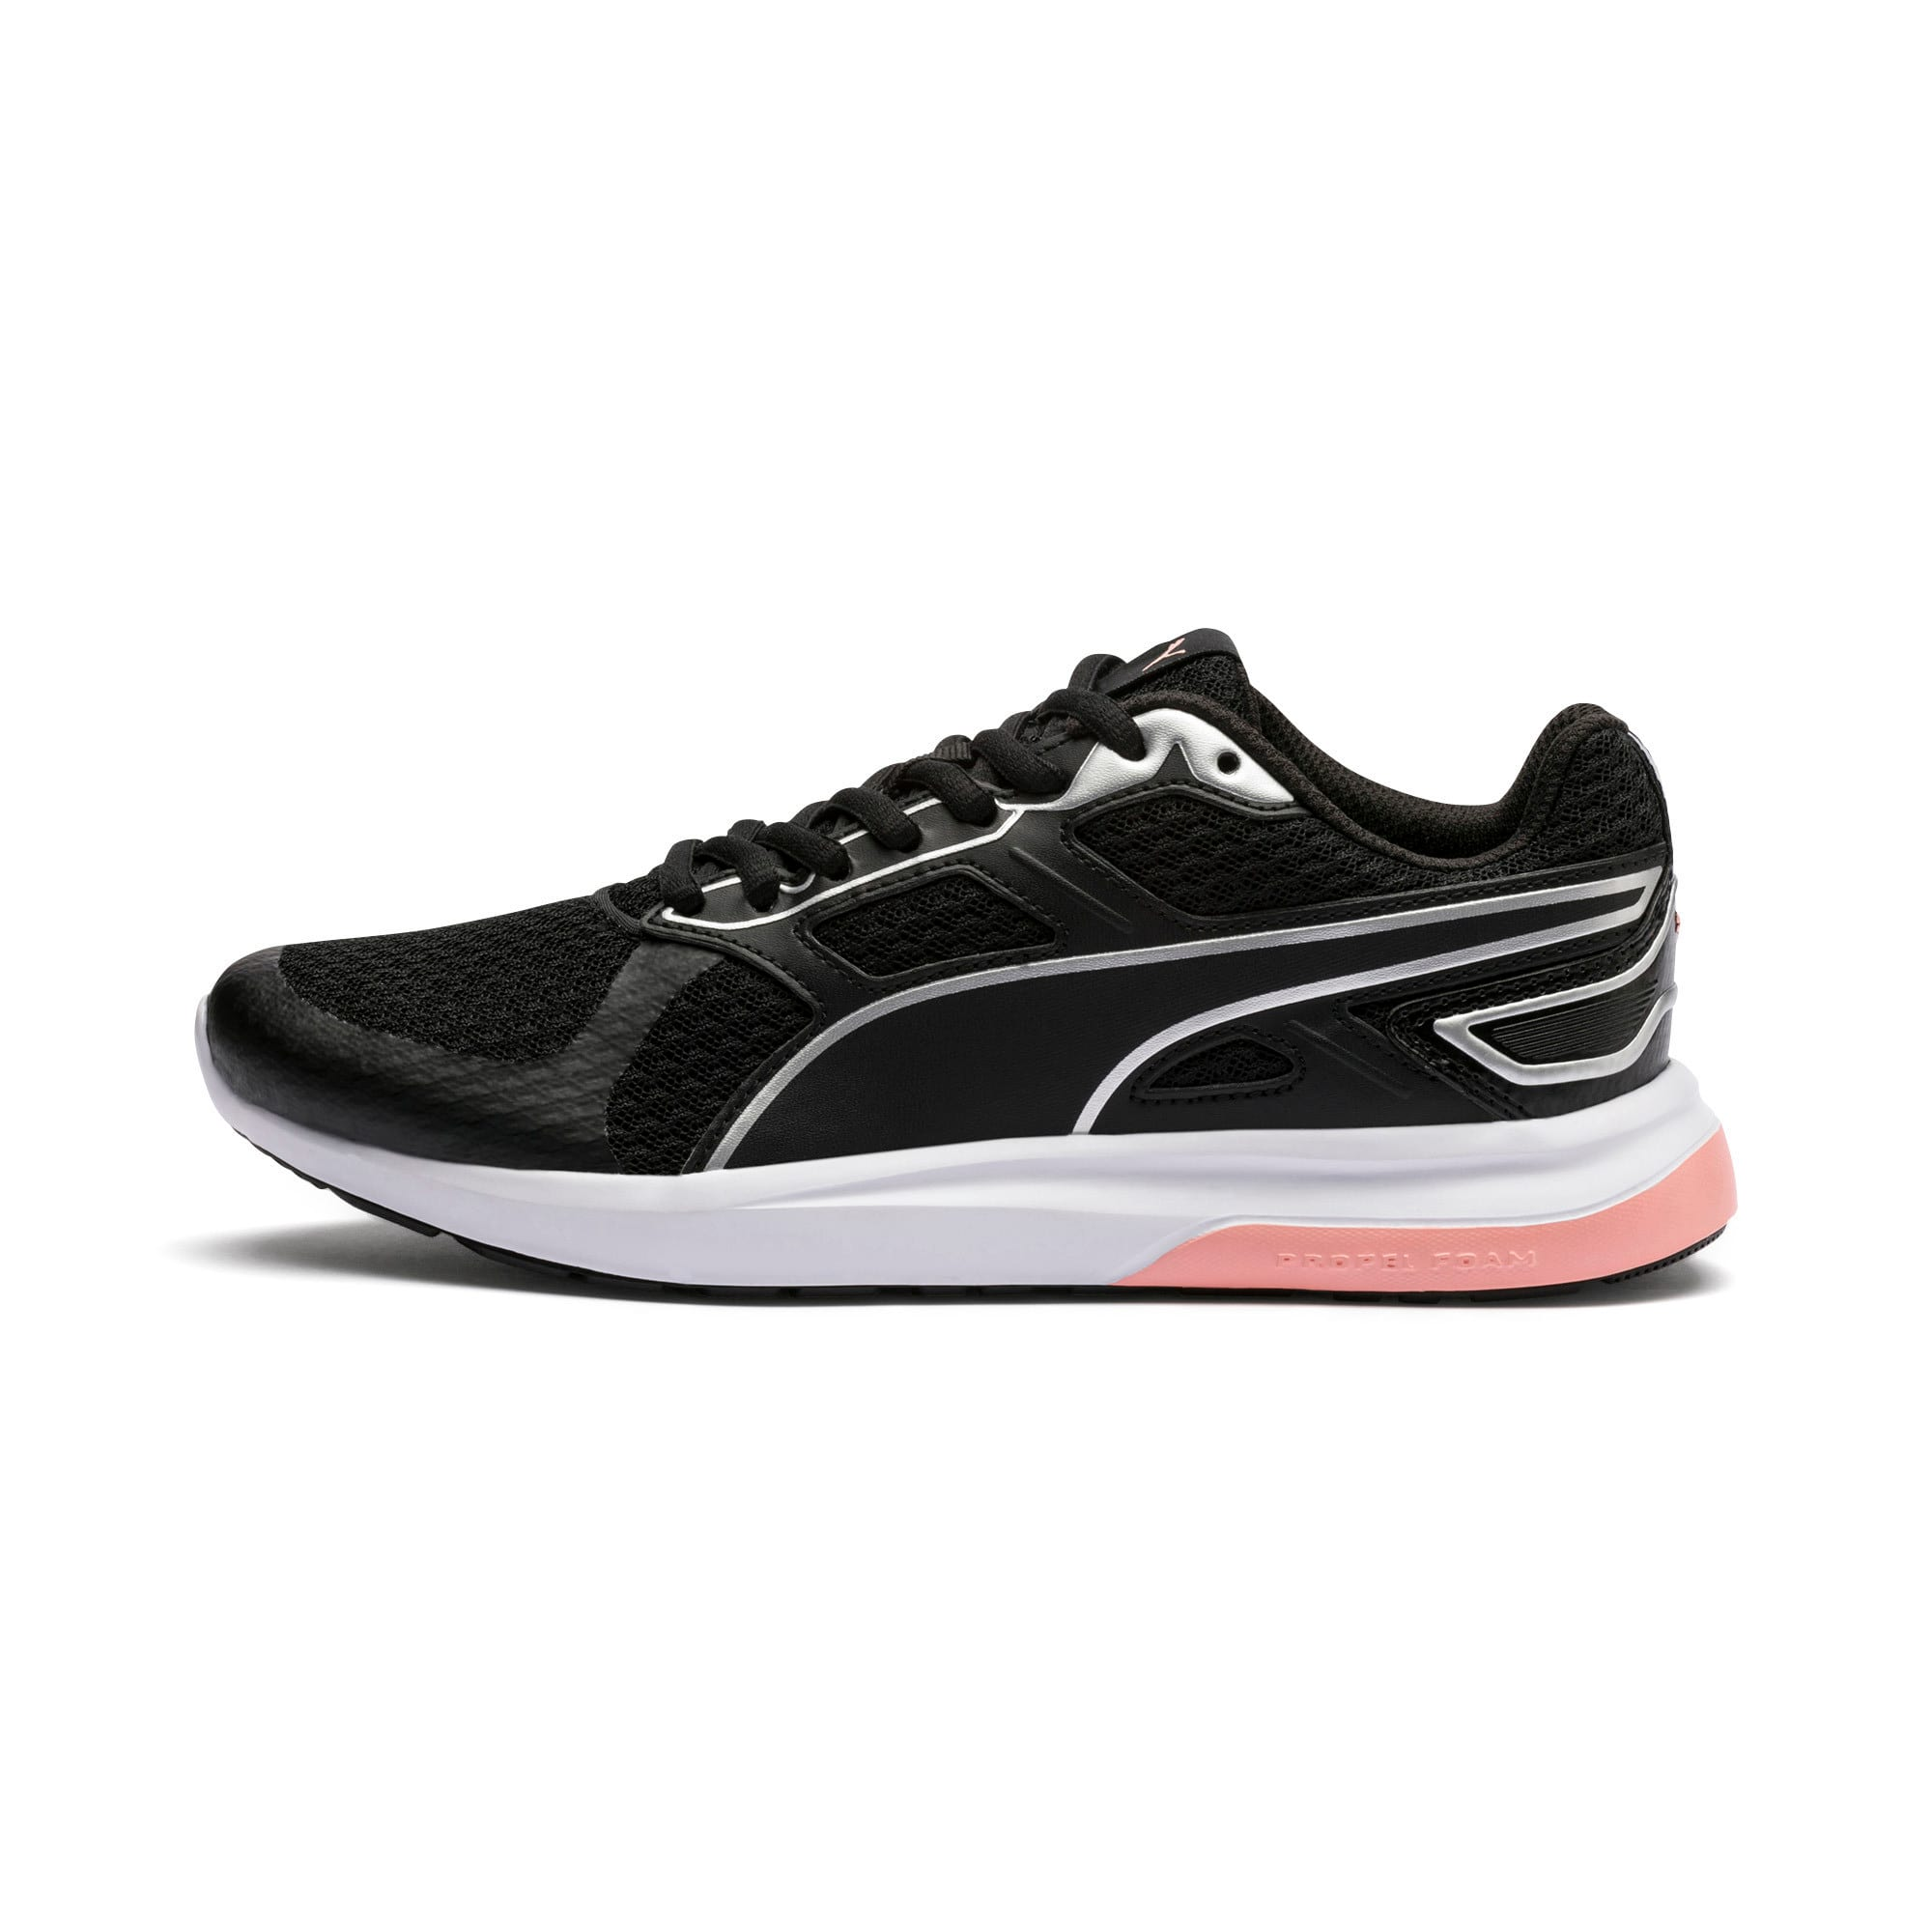 Thumbnail 1 of Escaper Tech Sneakers, Black-Silver-White-Peach Bud, medium-IND